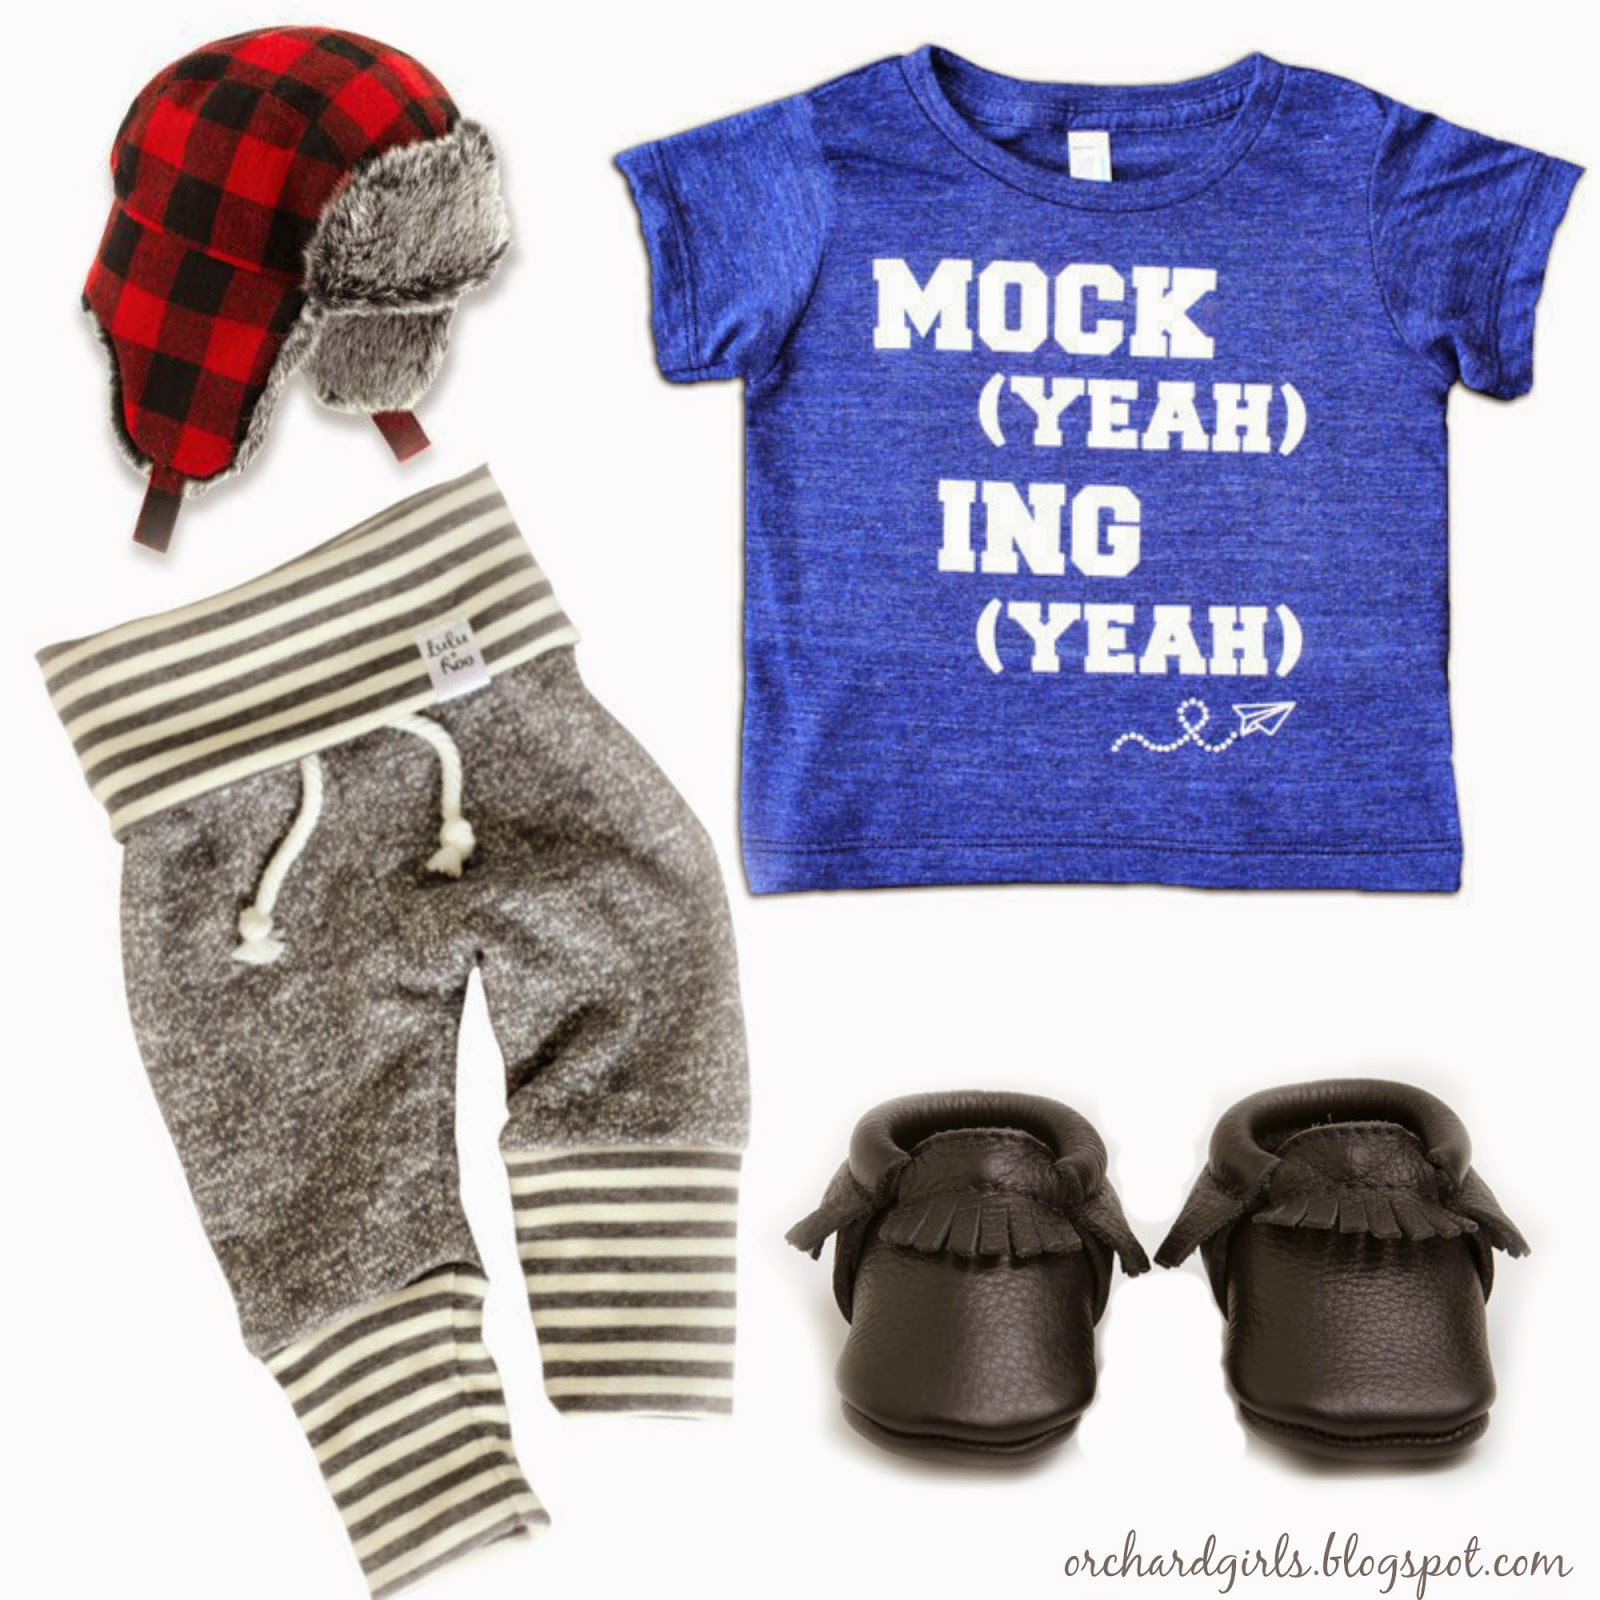 Mini Style Board -- Orchard Girls Monthly Small Business Feature: ShopLuluandRoo @shopluluandroo #shopluluandroo